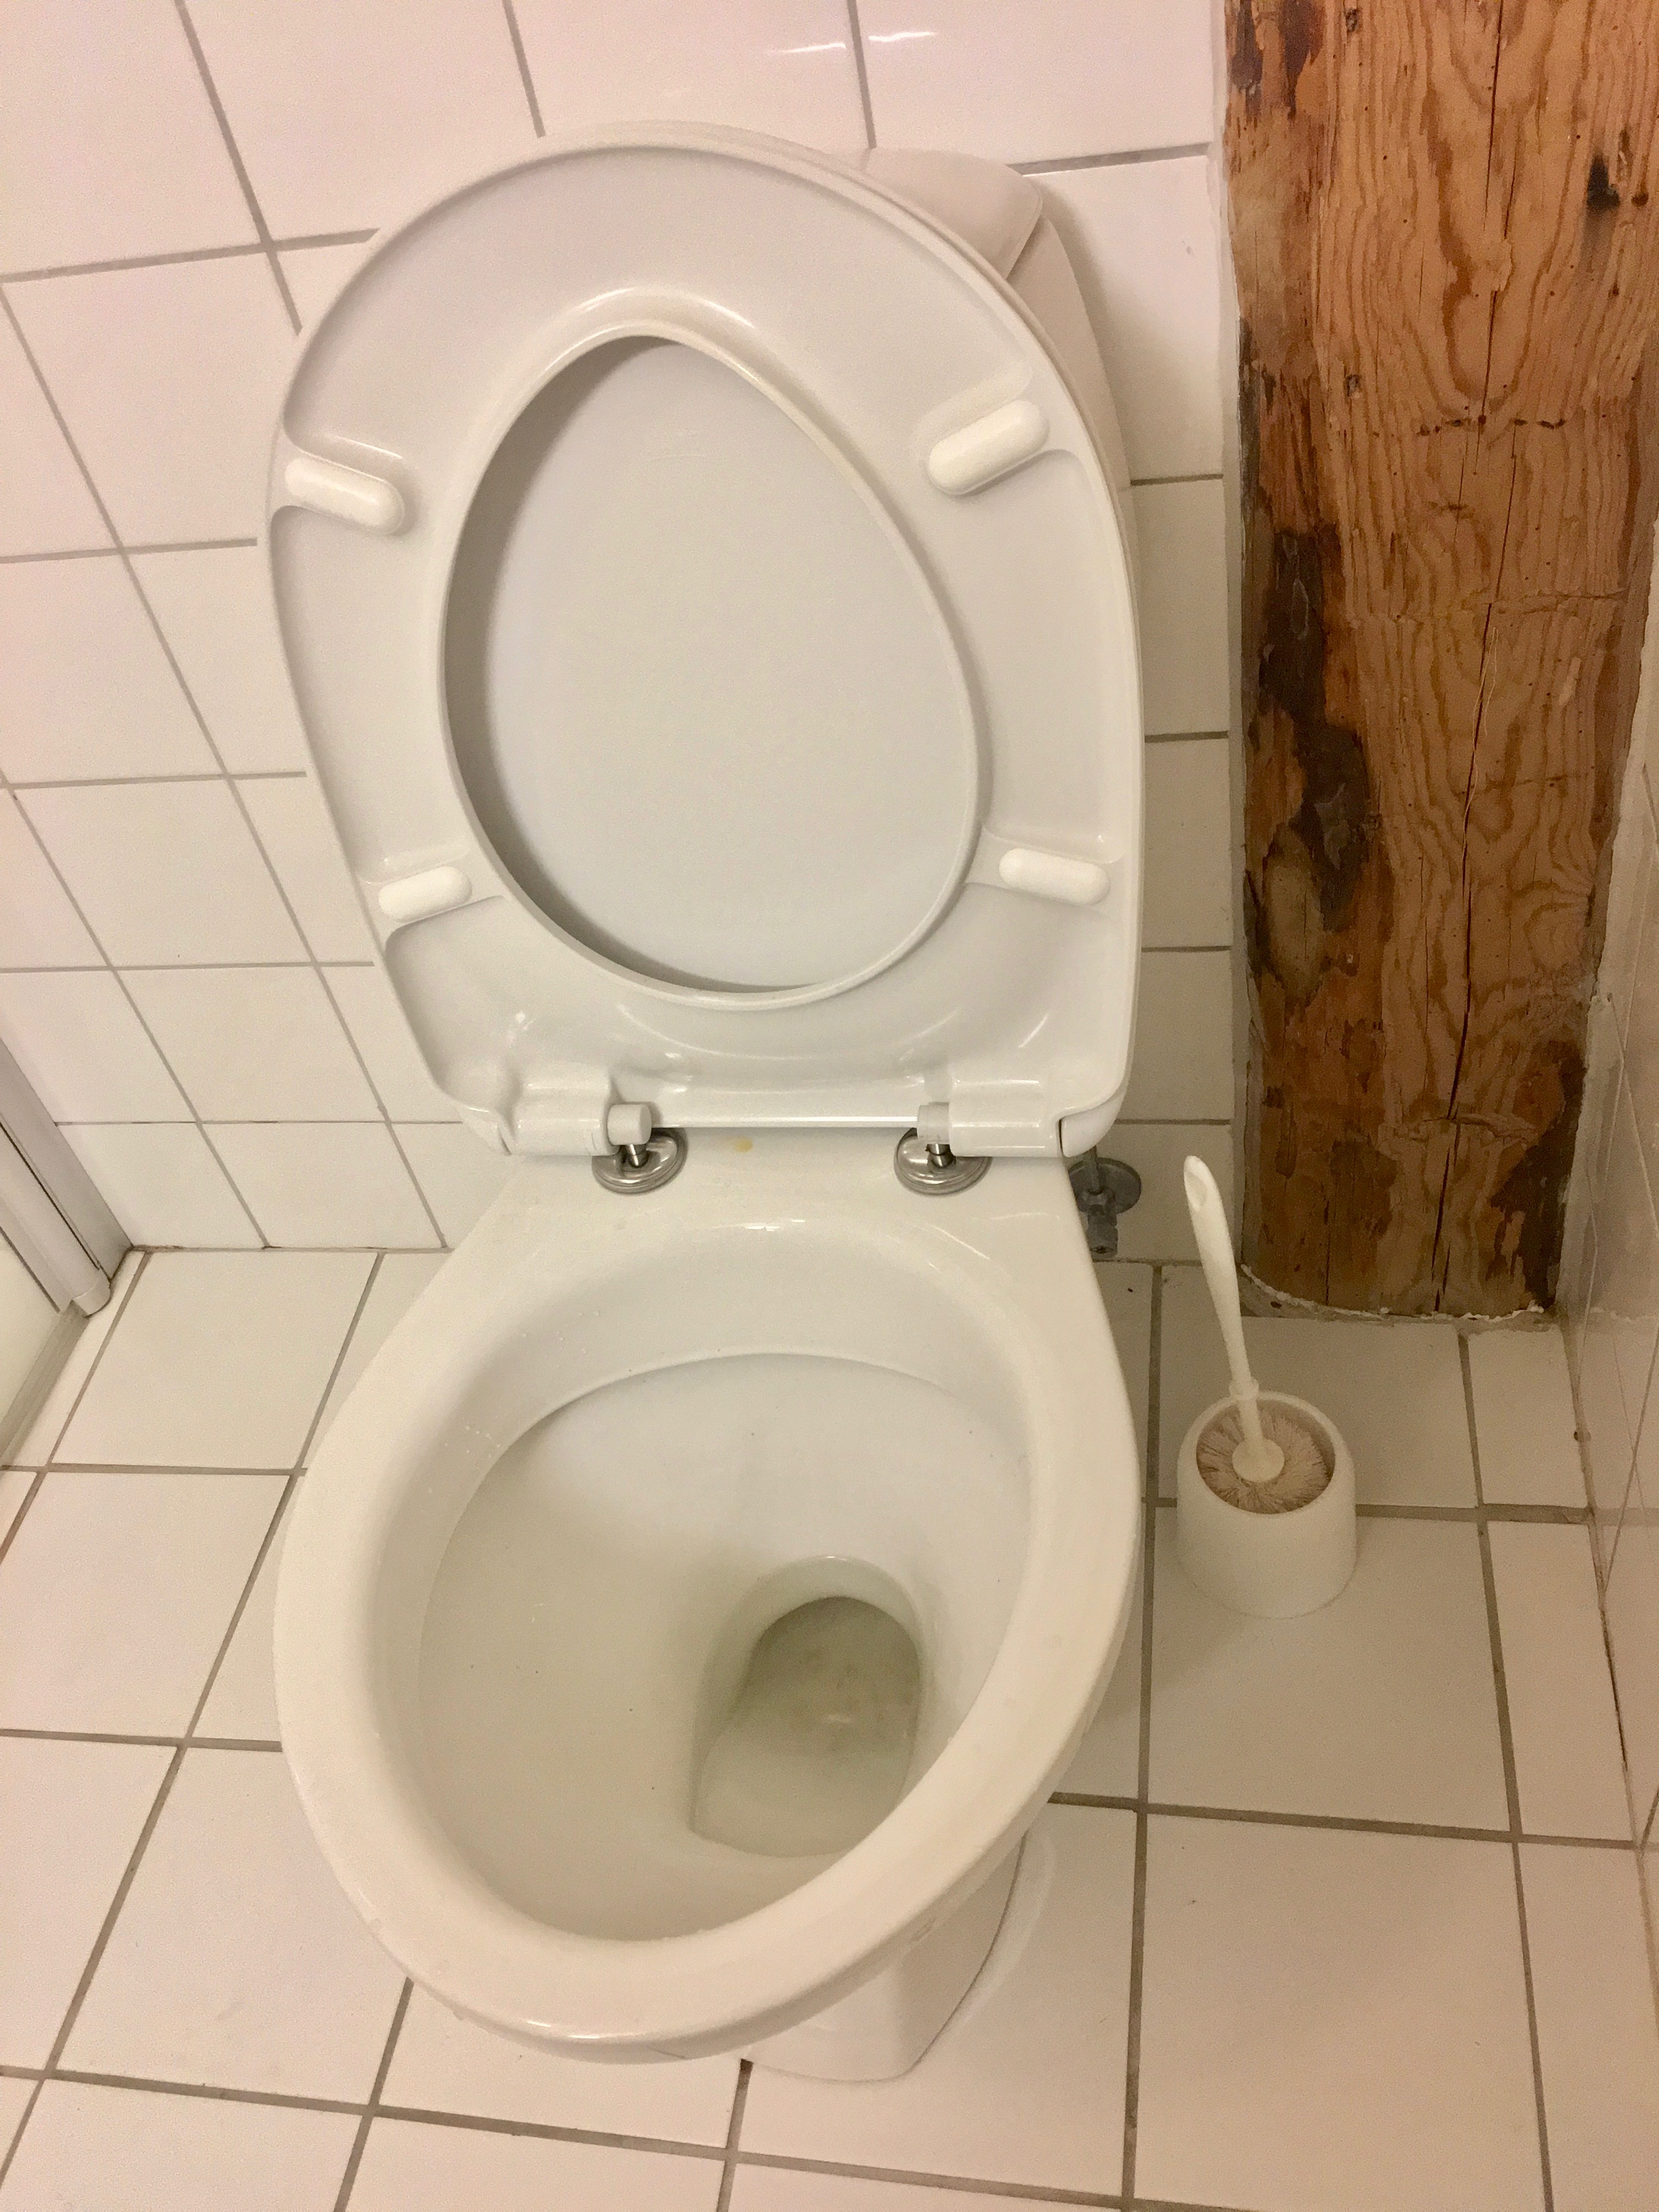 File:Toilet, wall and floor tiles, and a toilet brush in a bathroom ...